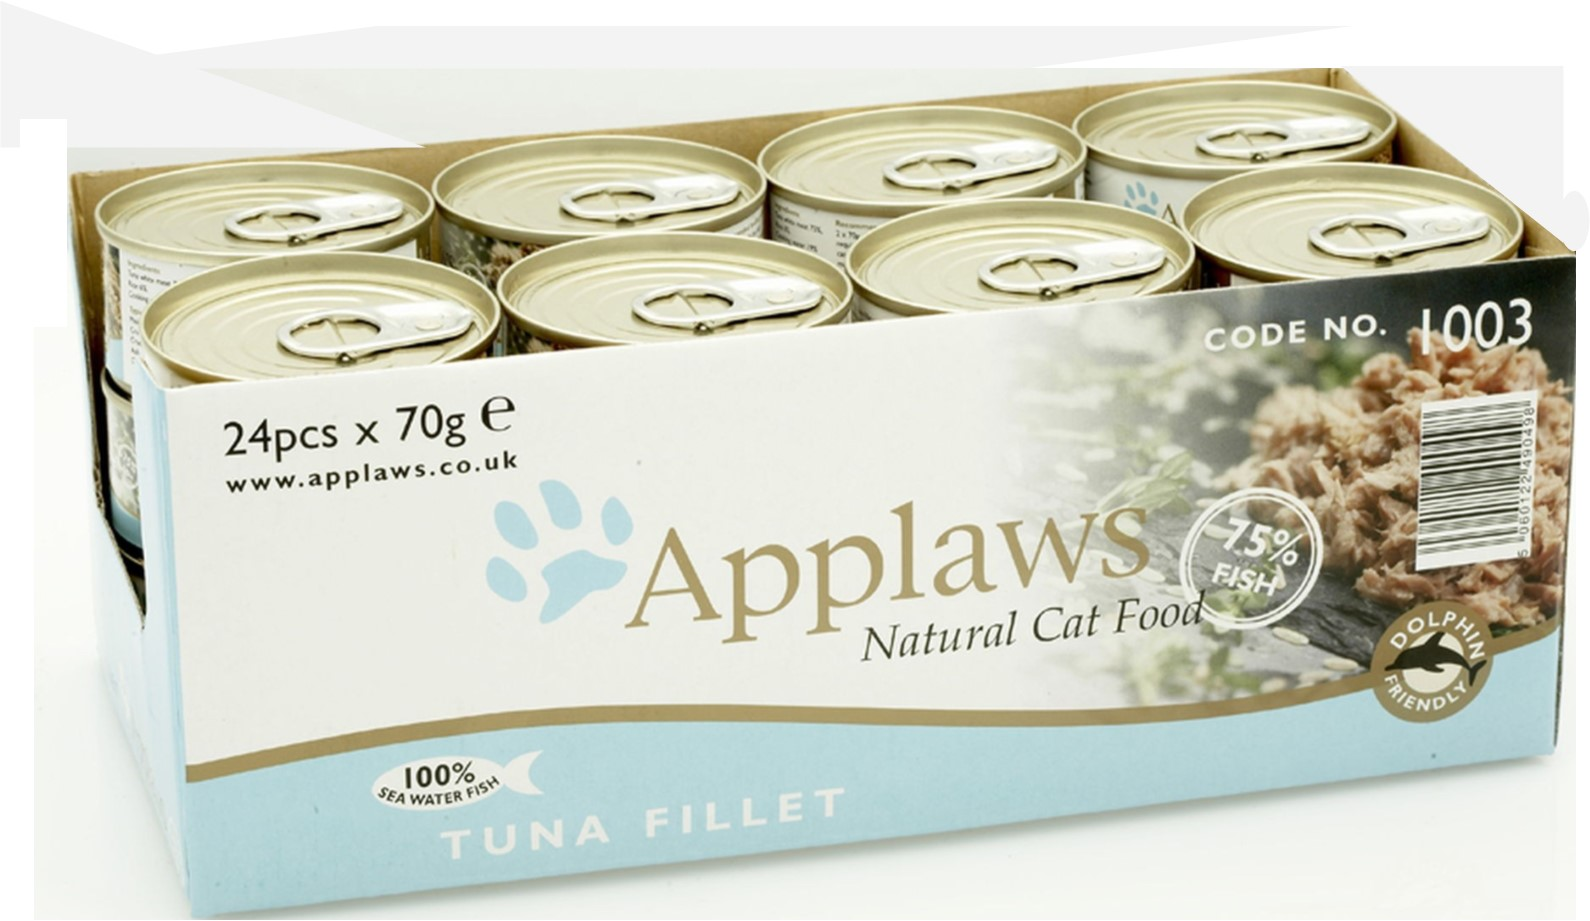 Applaws Cat Food Tin Tuna Fillet 24 x 70g